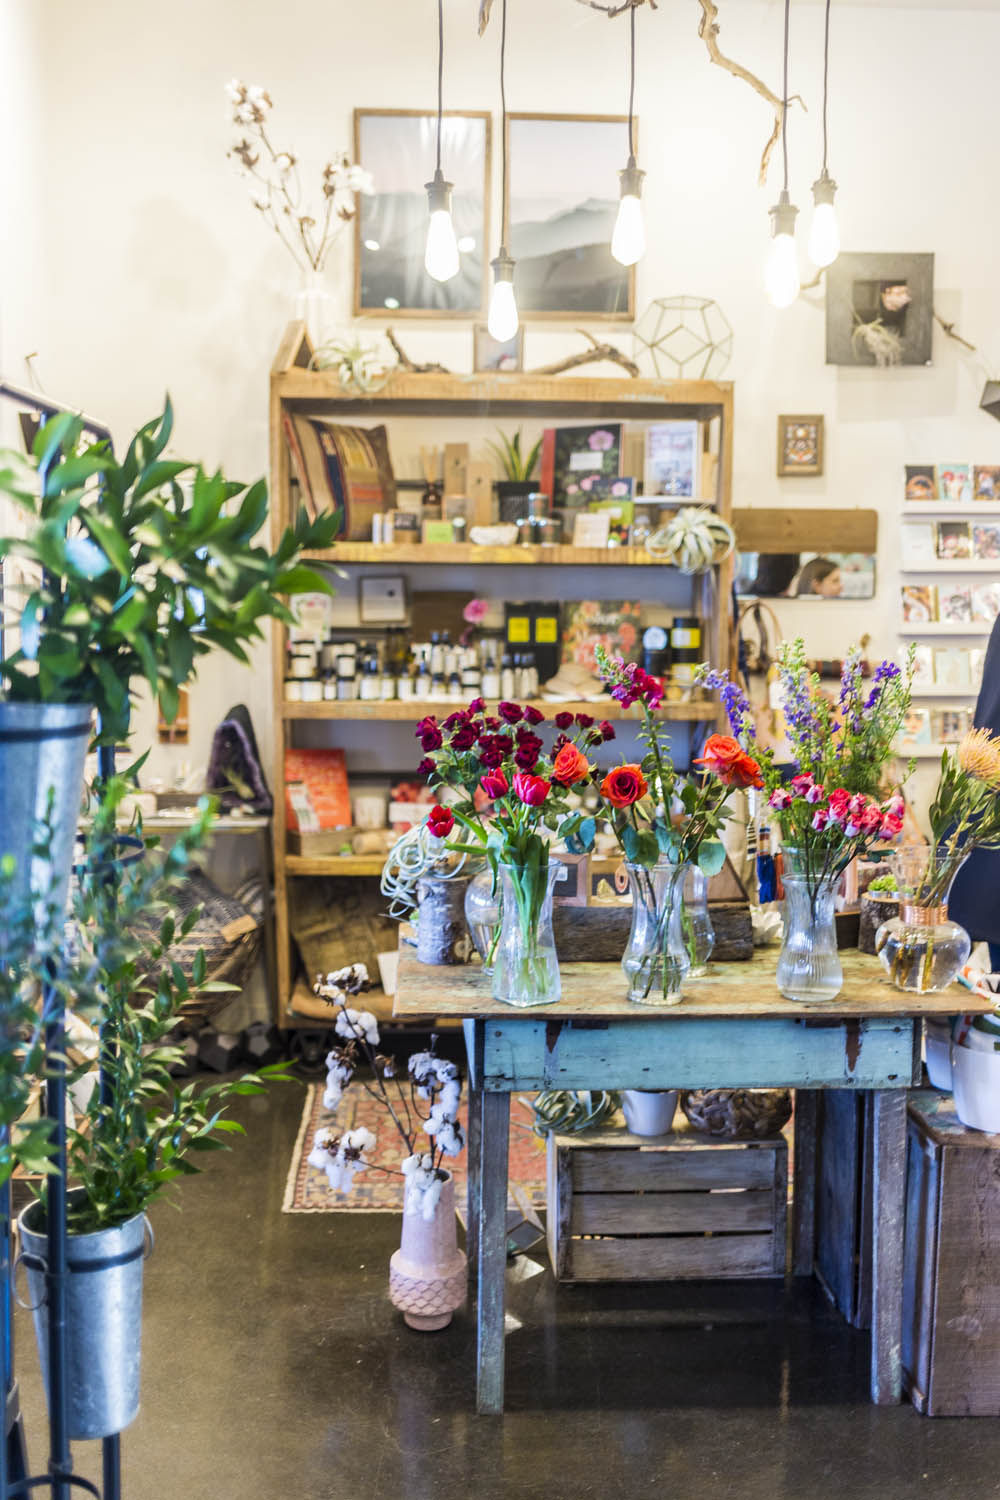 Things to do in Olympia, WA: Visit the 222 Market and Fleurae Floral // Seattle Travel Blog